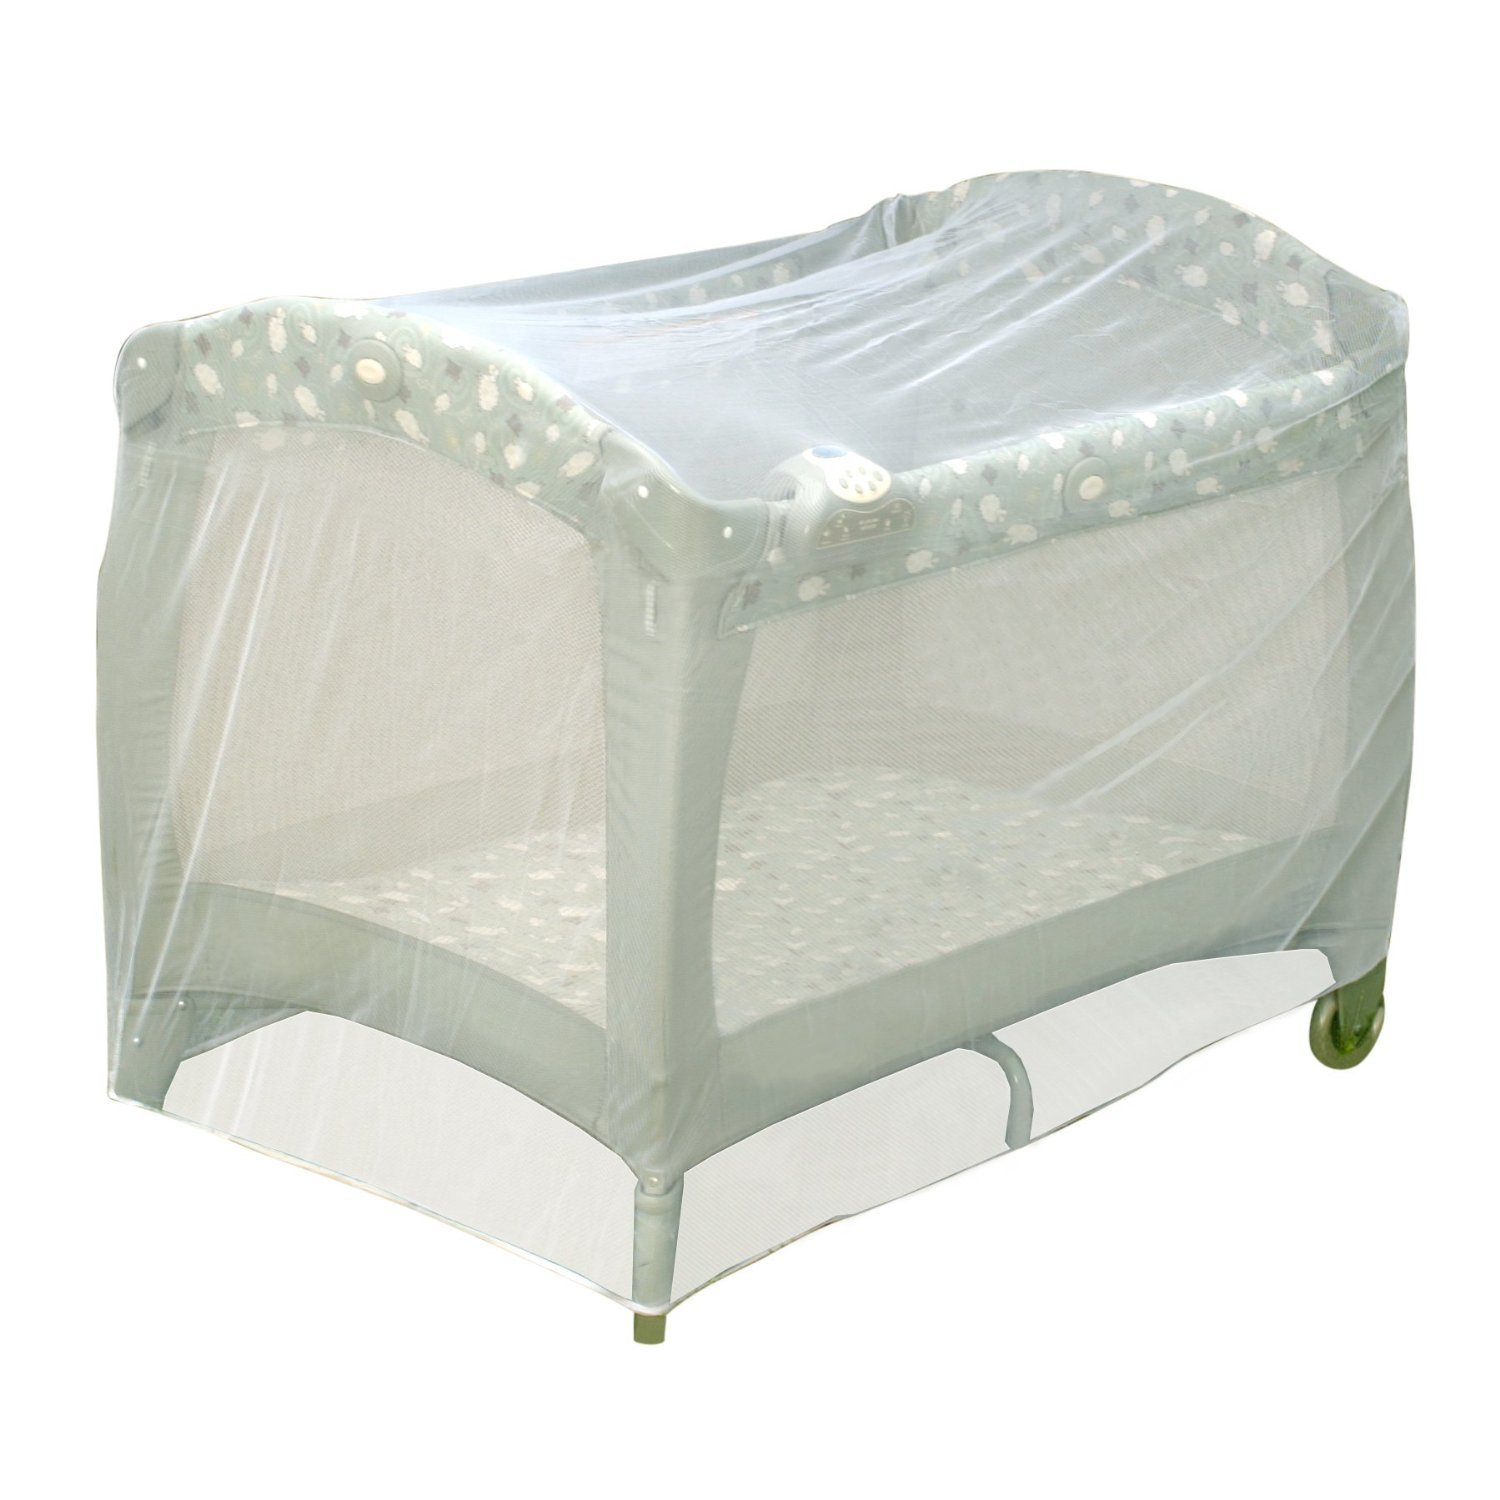 Pack N Play - Playpen Netting Fits Most Graco